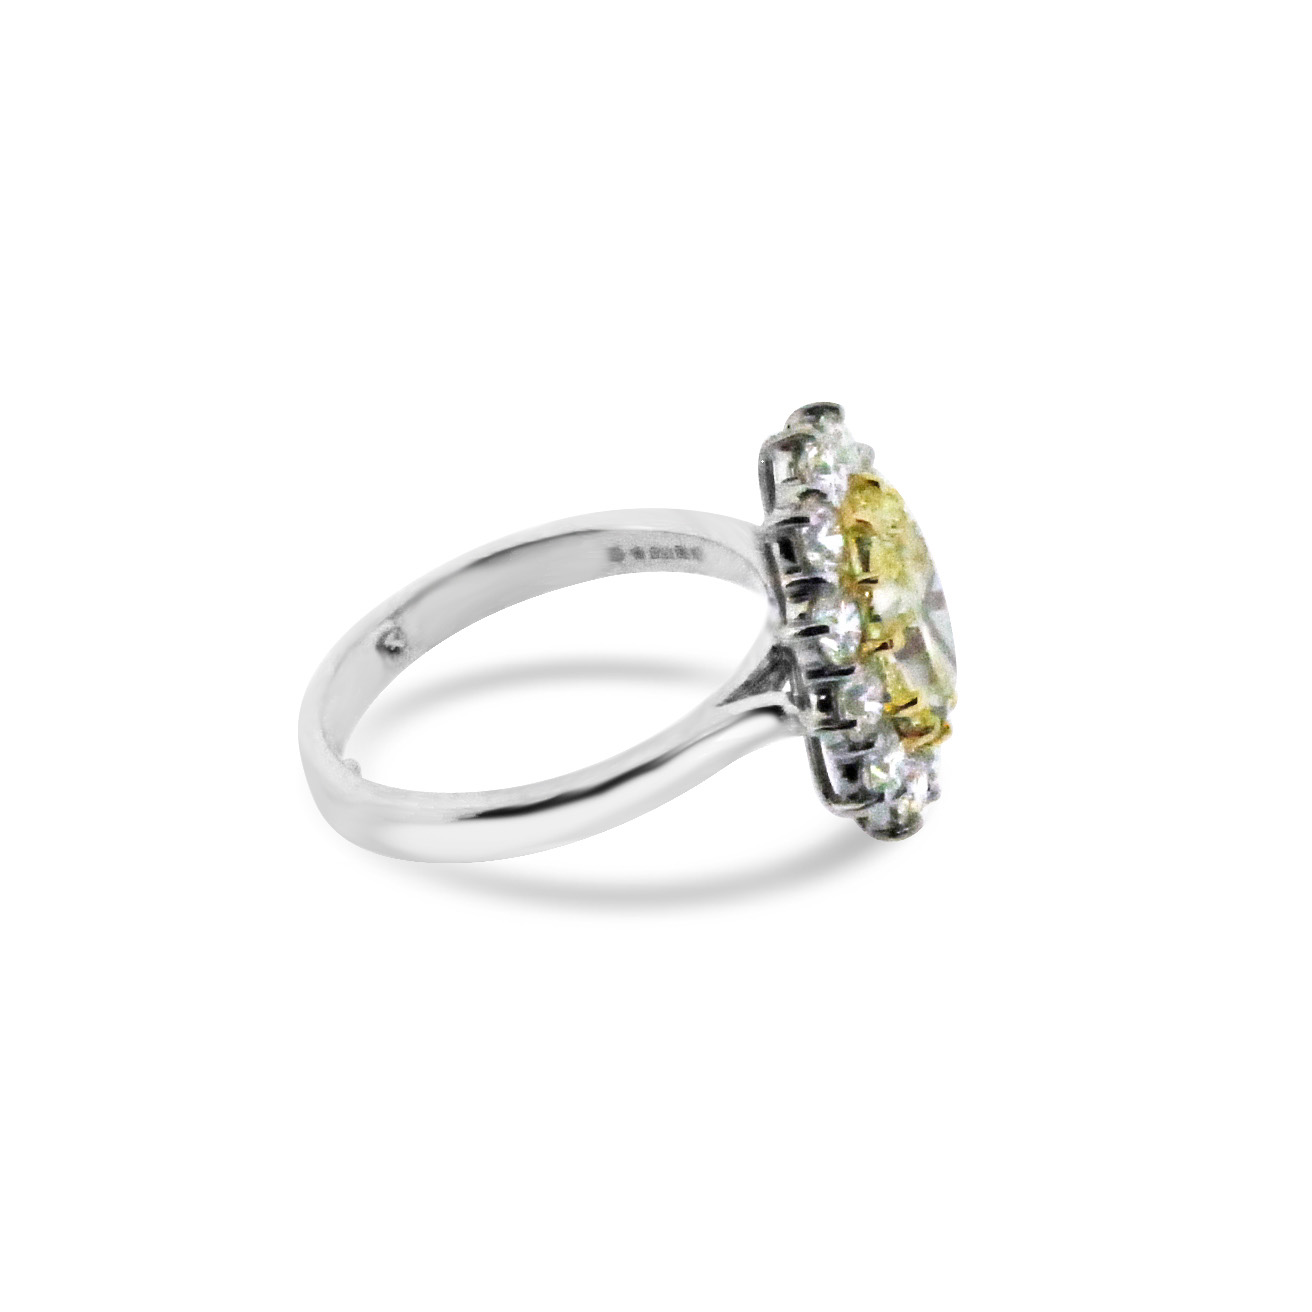 Yellow-diamond-oval-cluster-ring-in-platinum-1.jpg